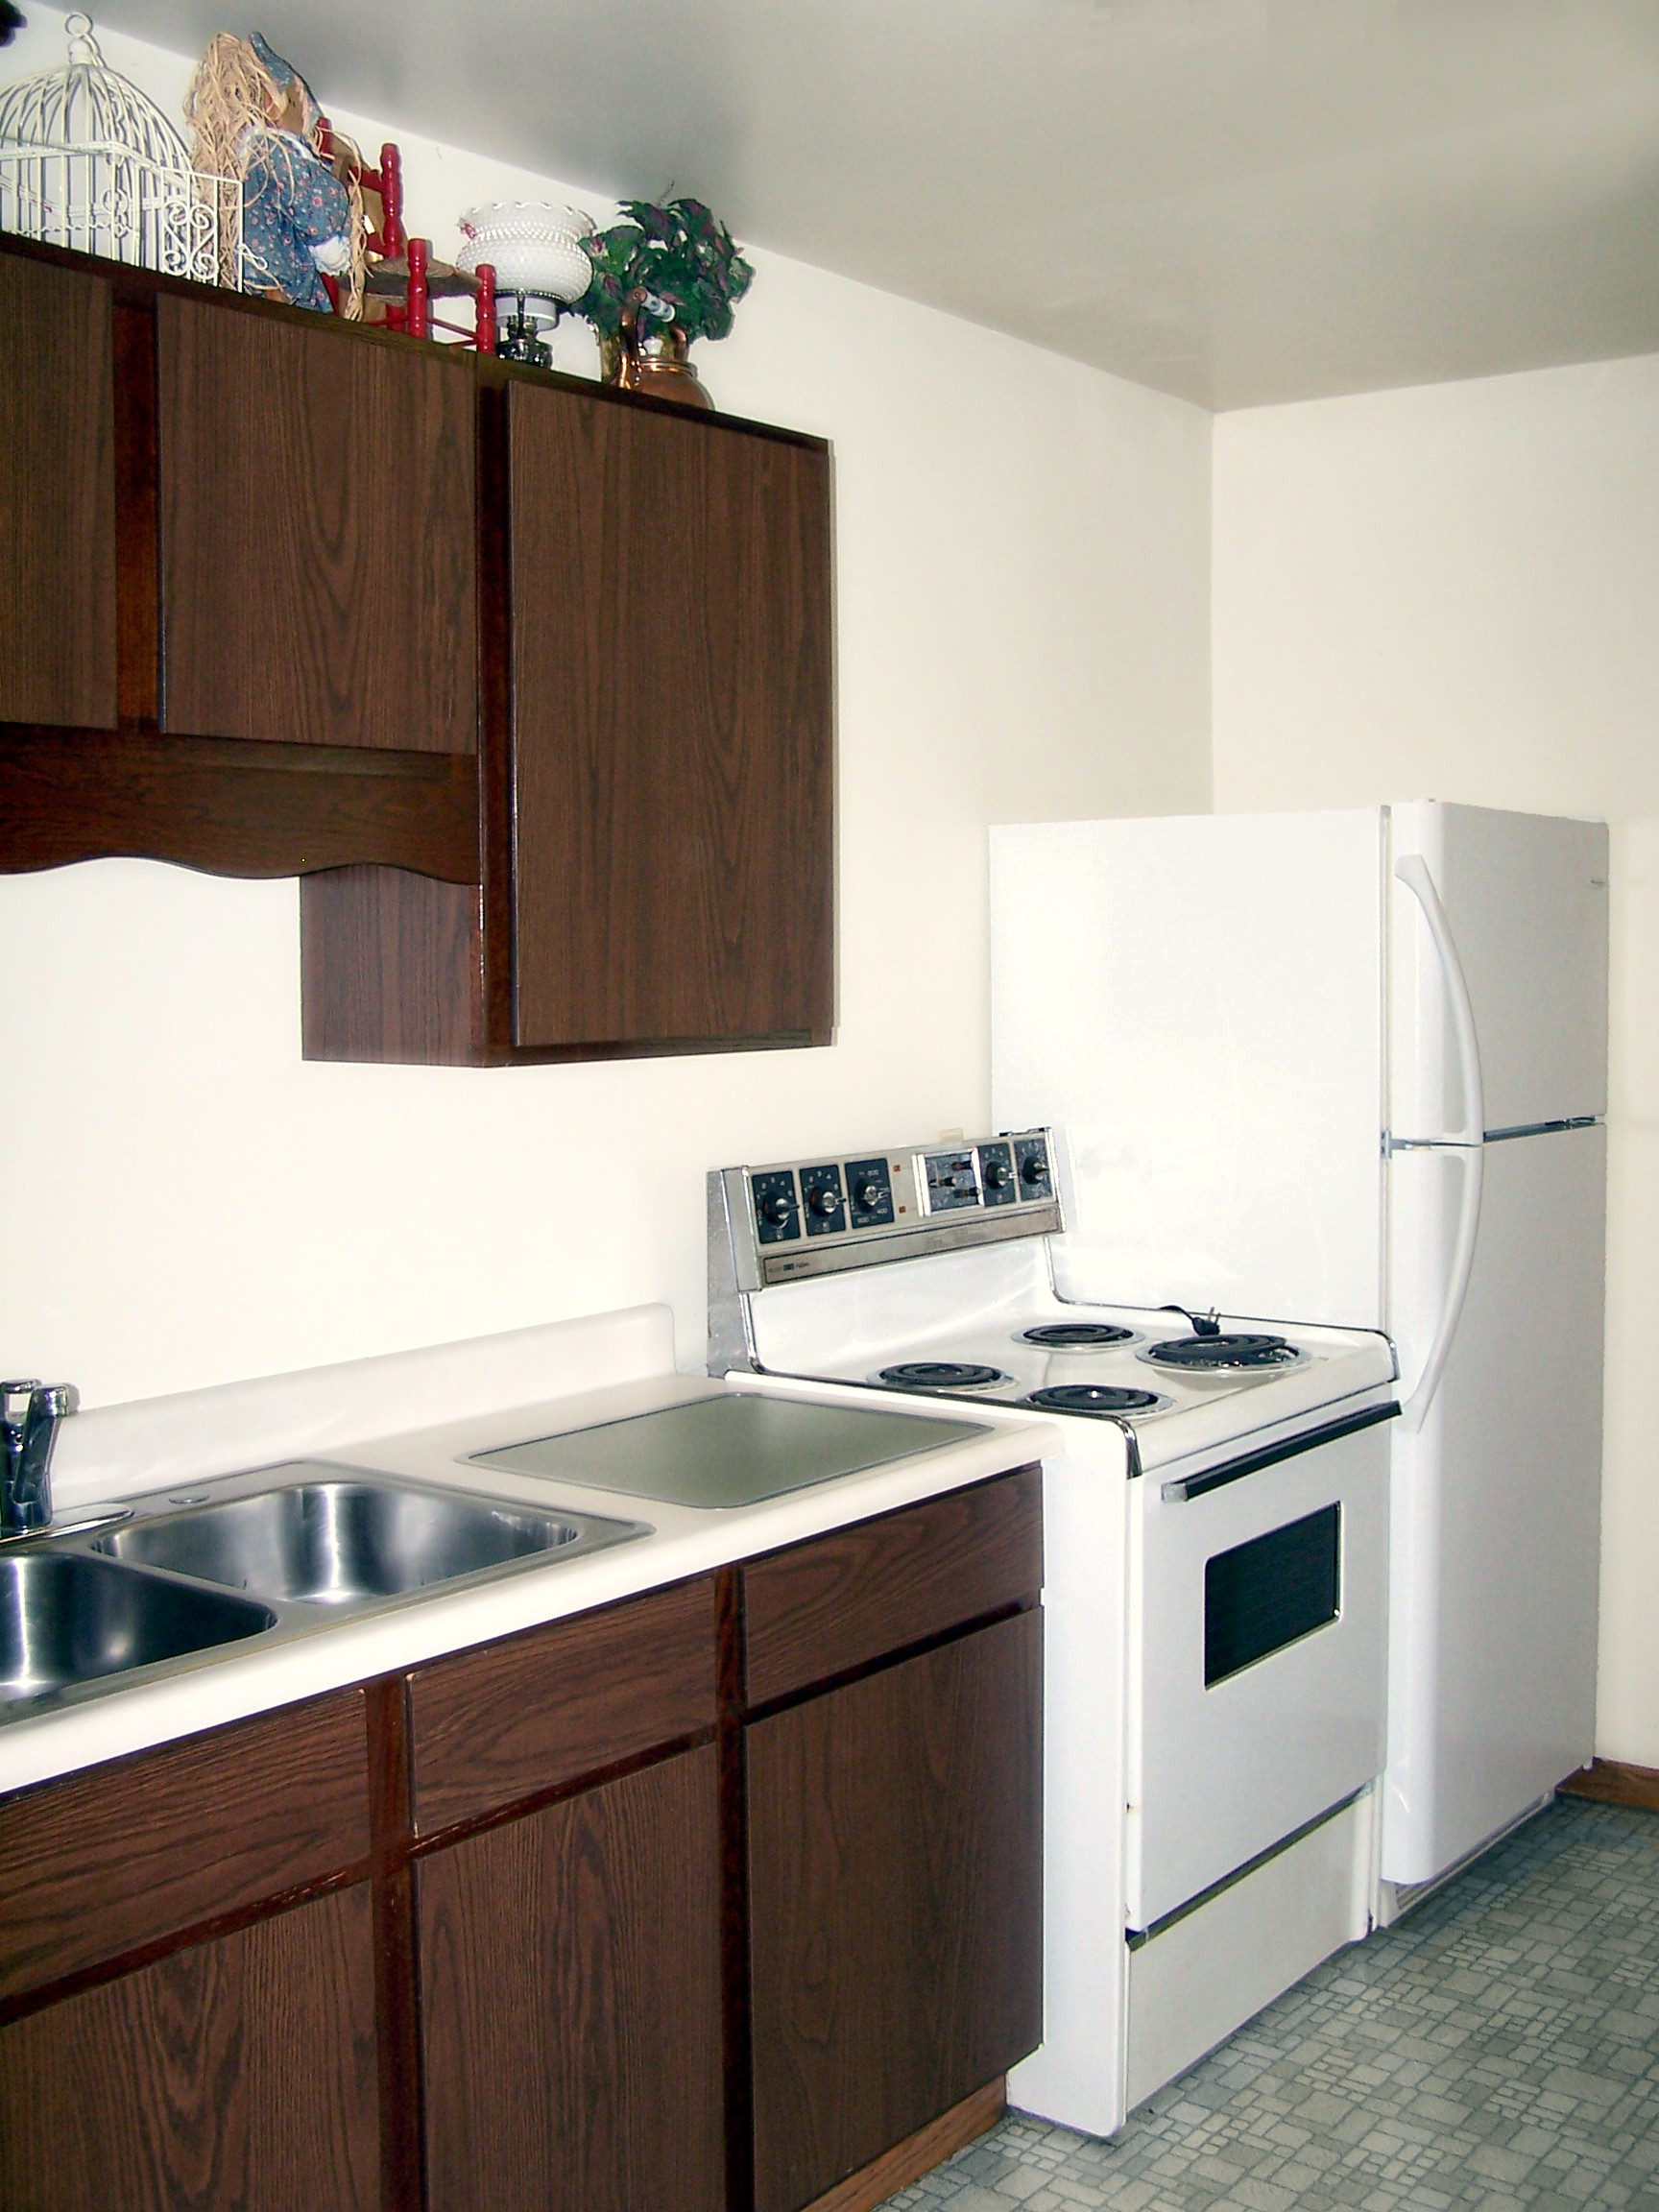 kitchens house in kitchen awesome with atlanta hotels best rooms image suites hotel of honolulu